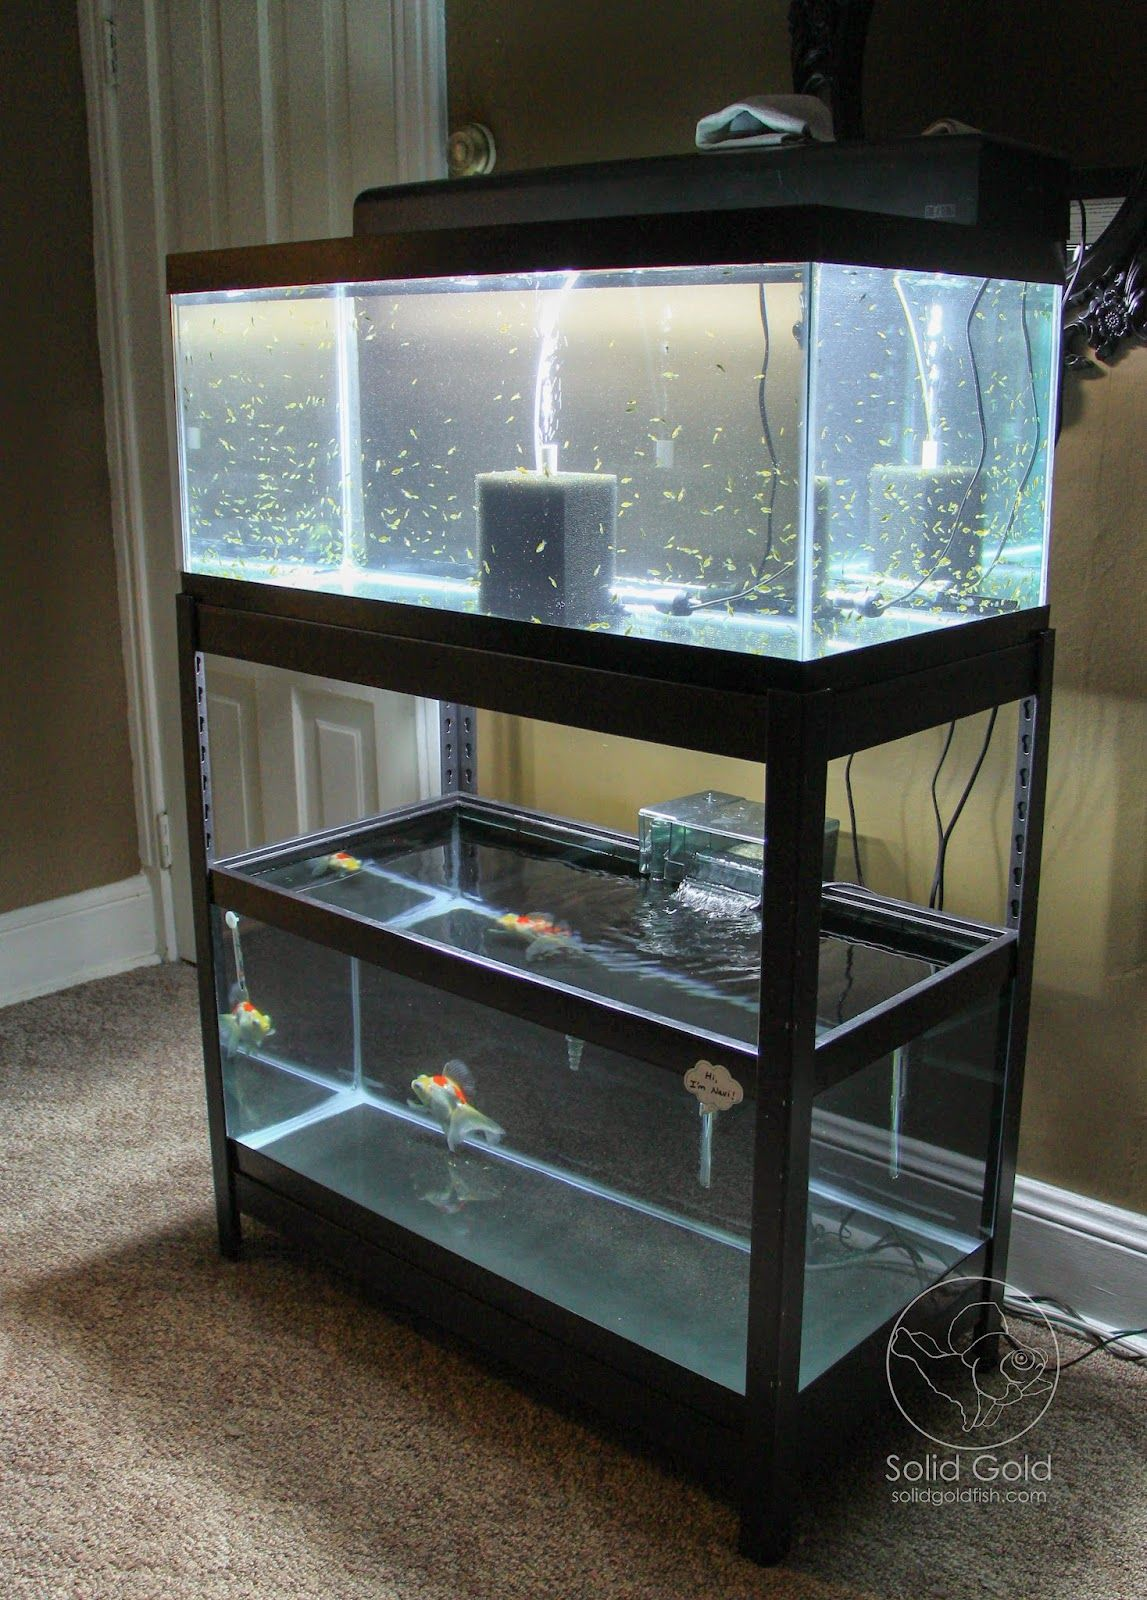 Diy Terrarium Stand Shelving Unit From Lowe 39s That Fits Two 40 Gallon Breeder